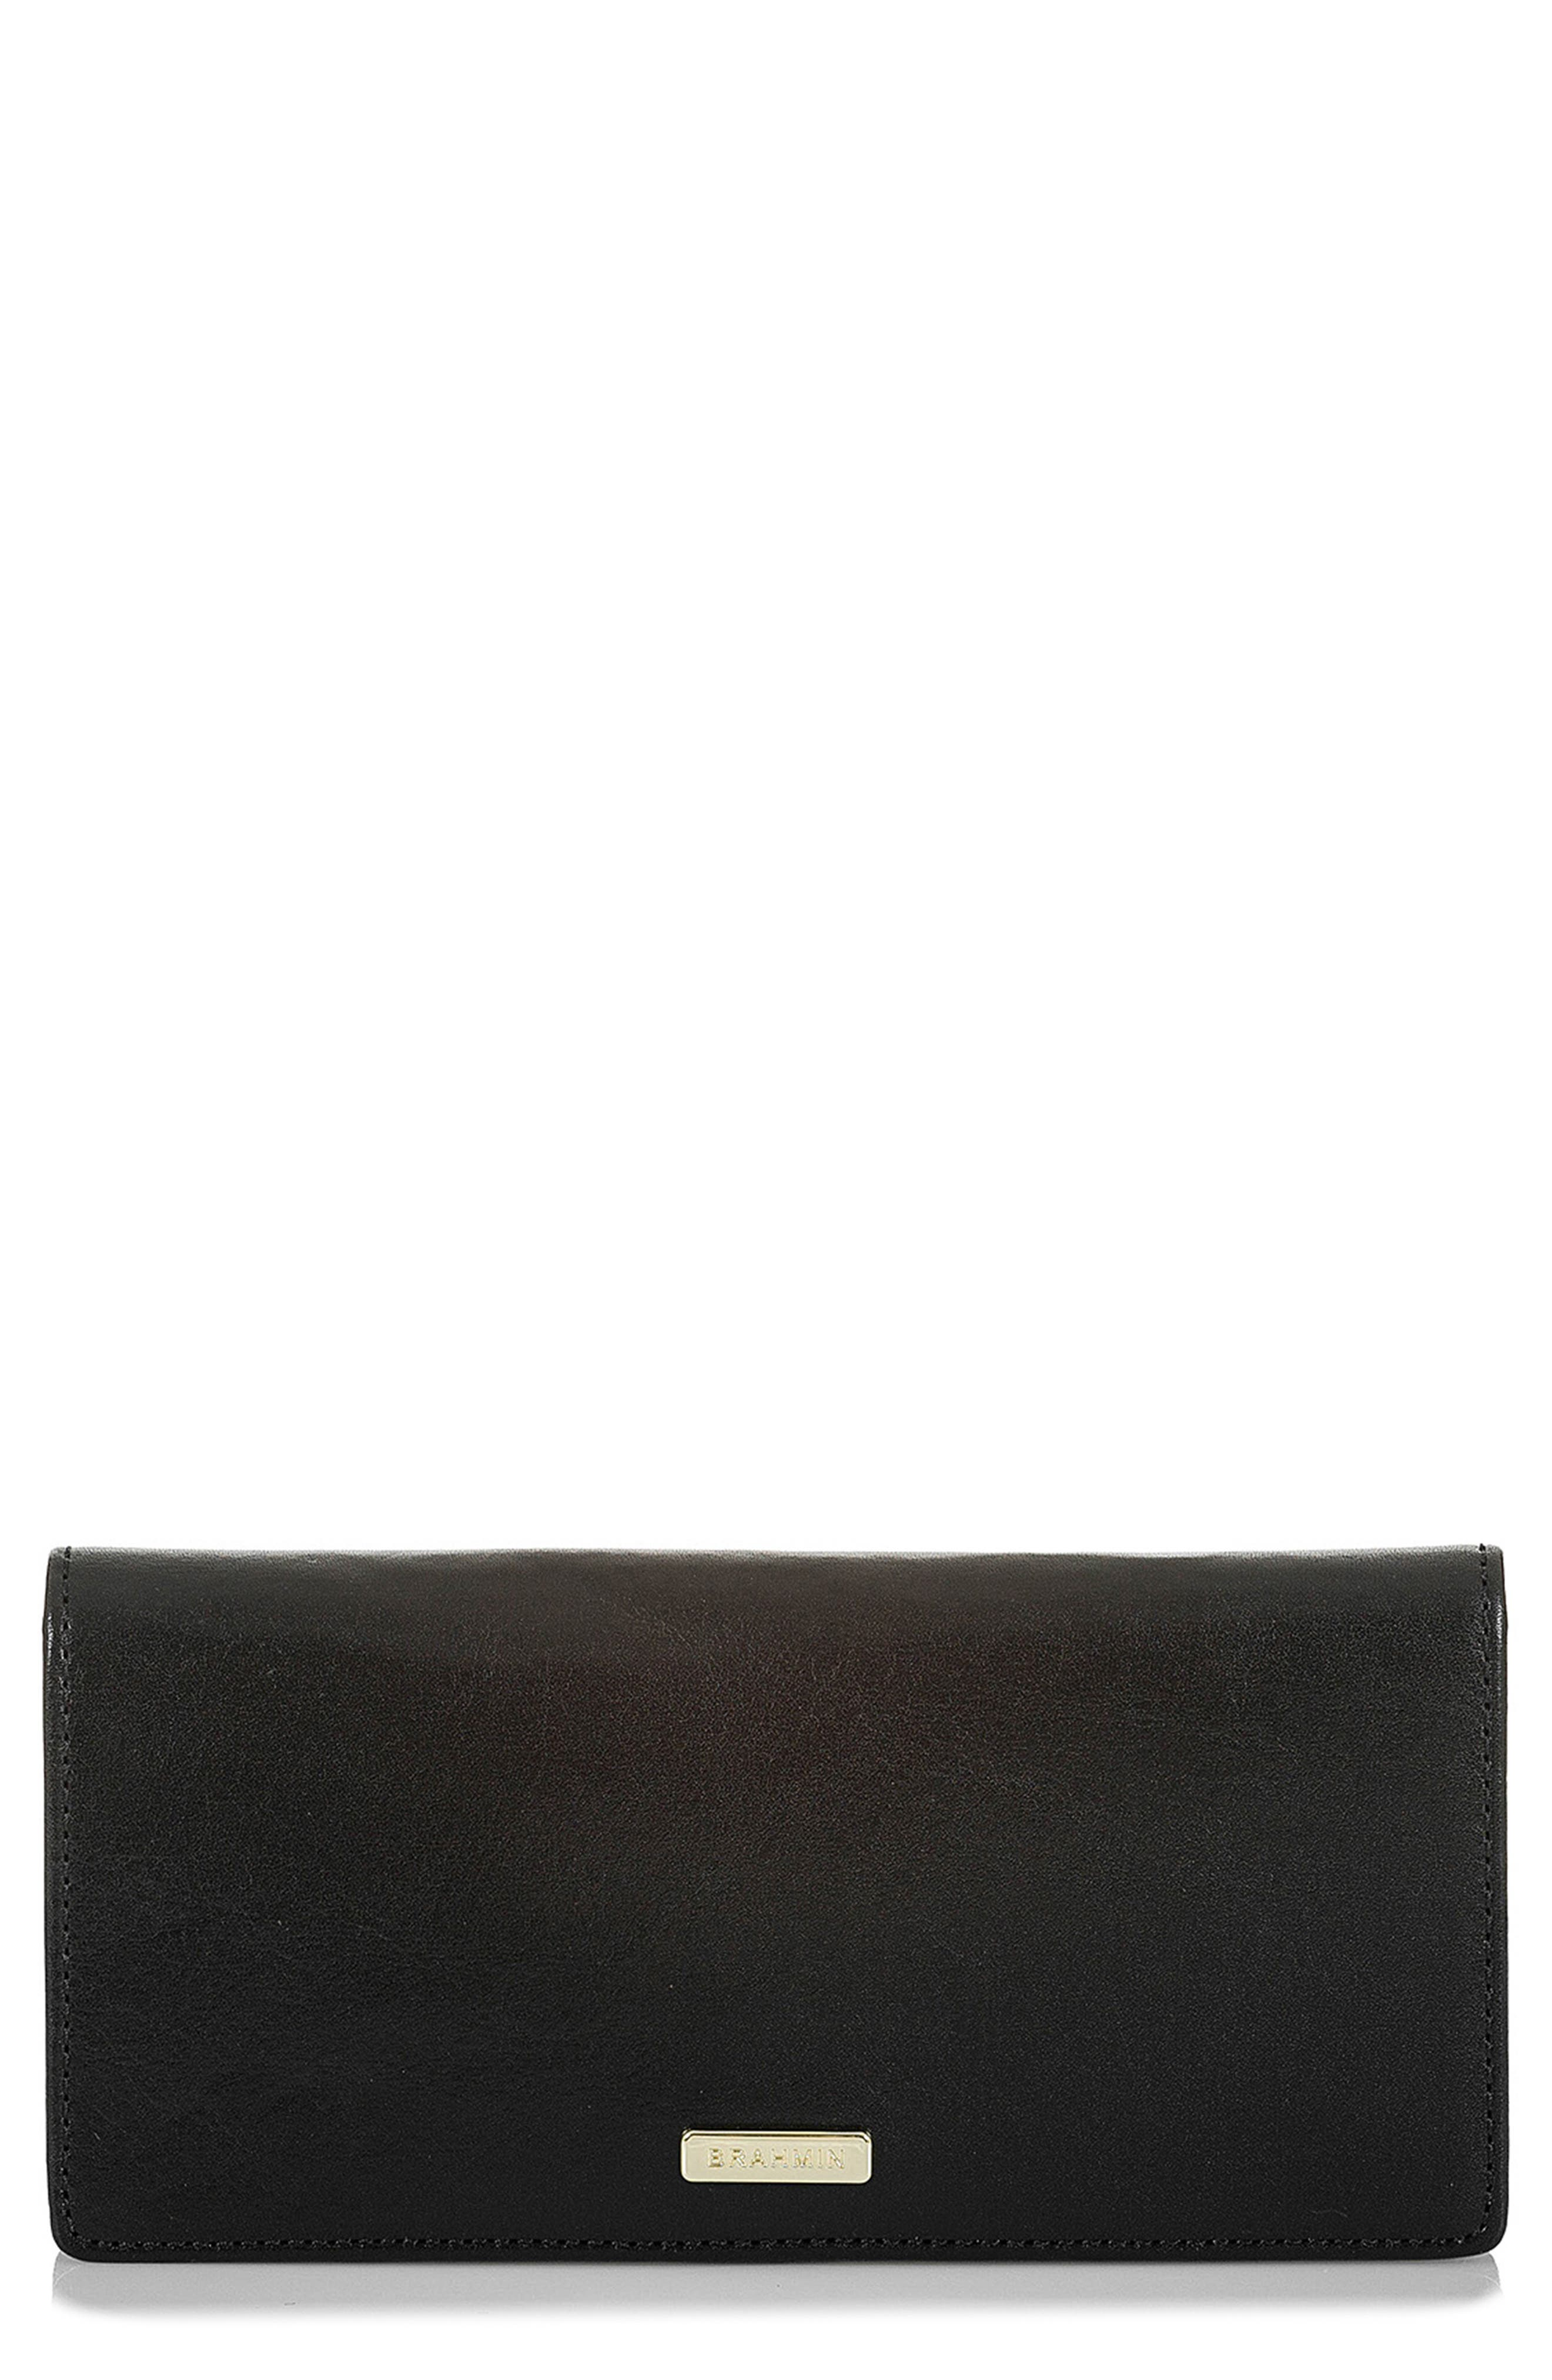 Ady Leather Wallet,                             Main thumbnail 1, color,                             BLACK